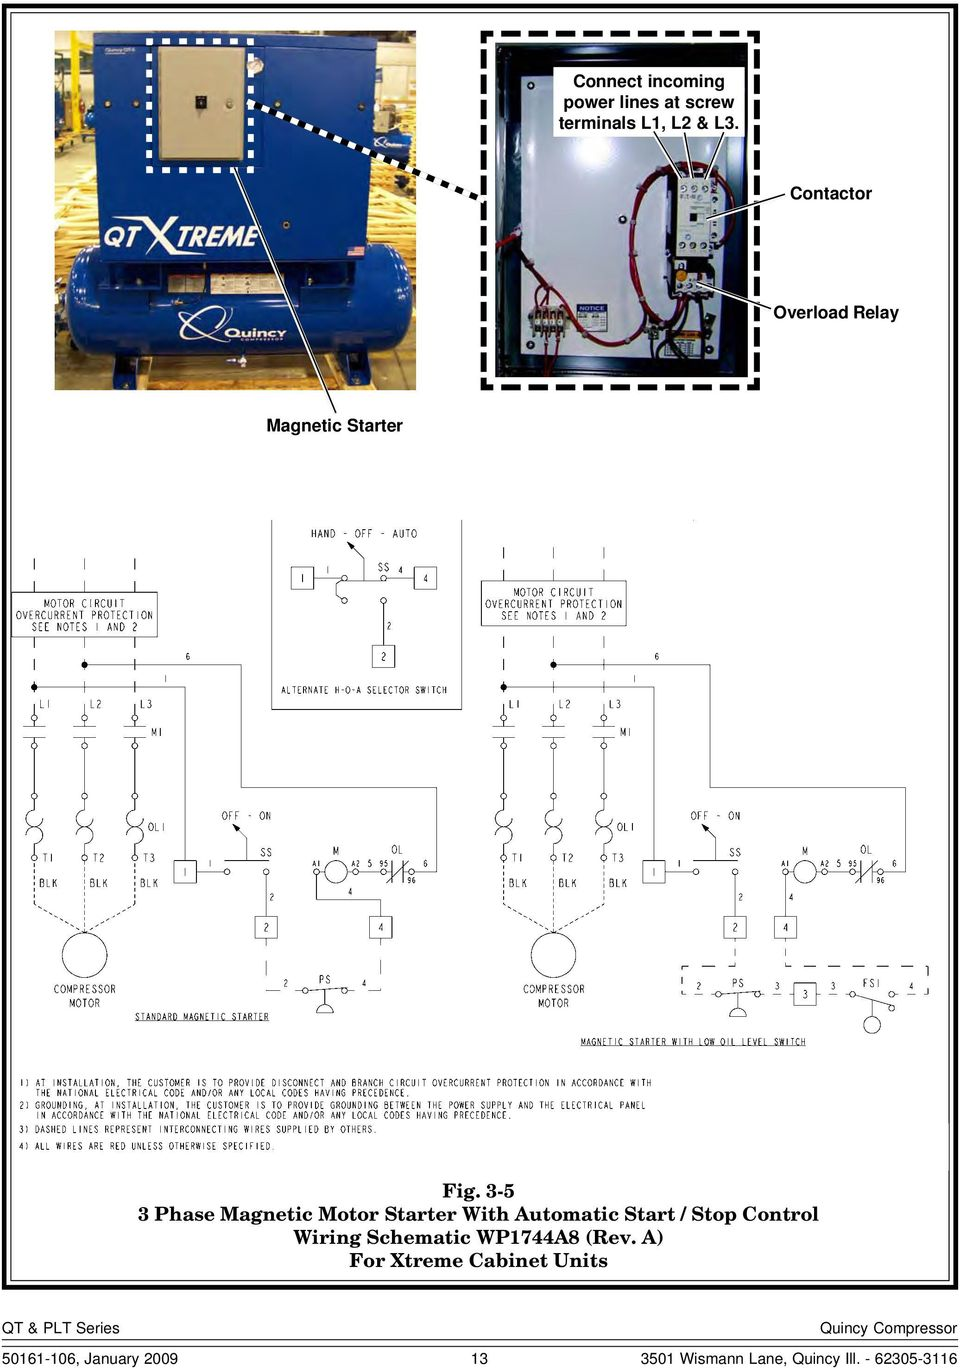 2 Stage Compressors Instruction Manual Pdf 3 Phase Compressor Wiring Schematic 5 Magnetic Motor Starter With Automatic Start Stop Control